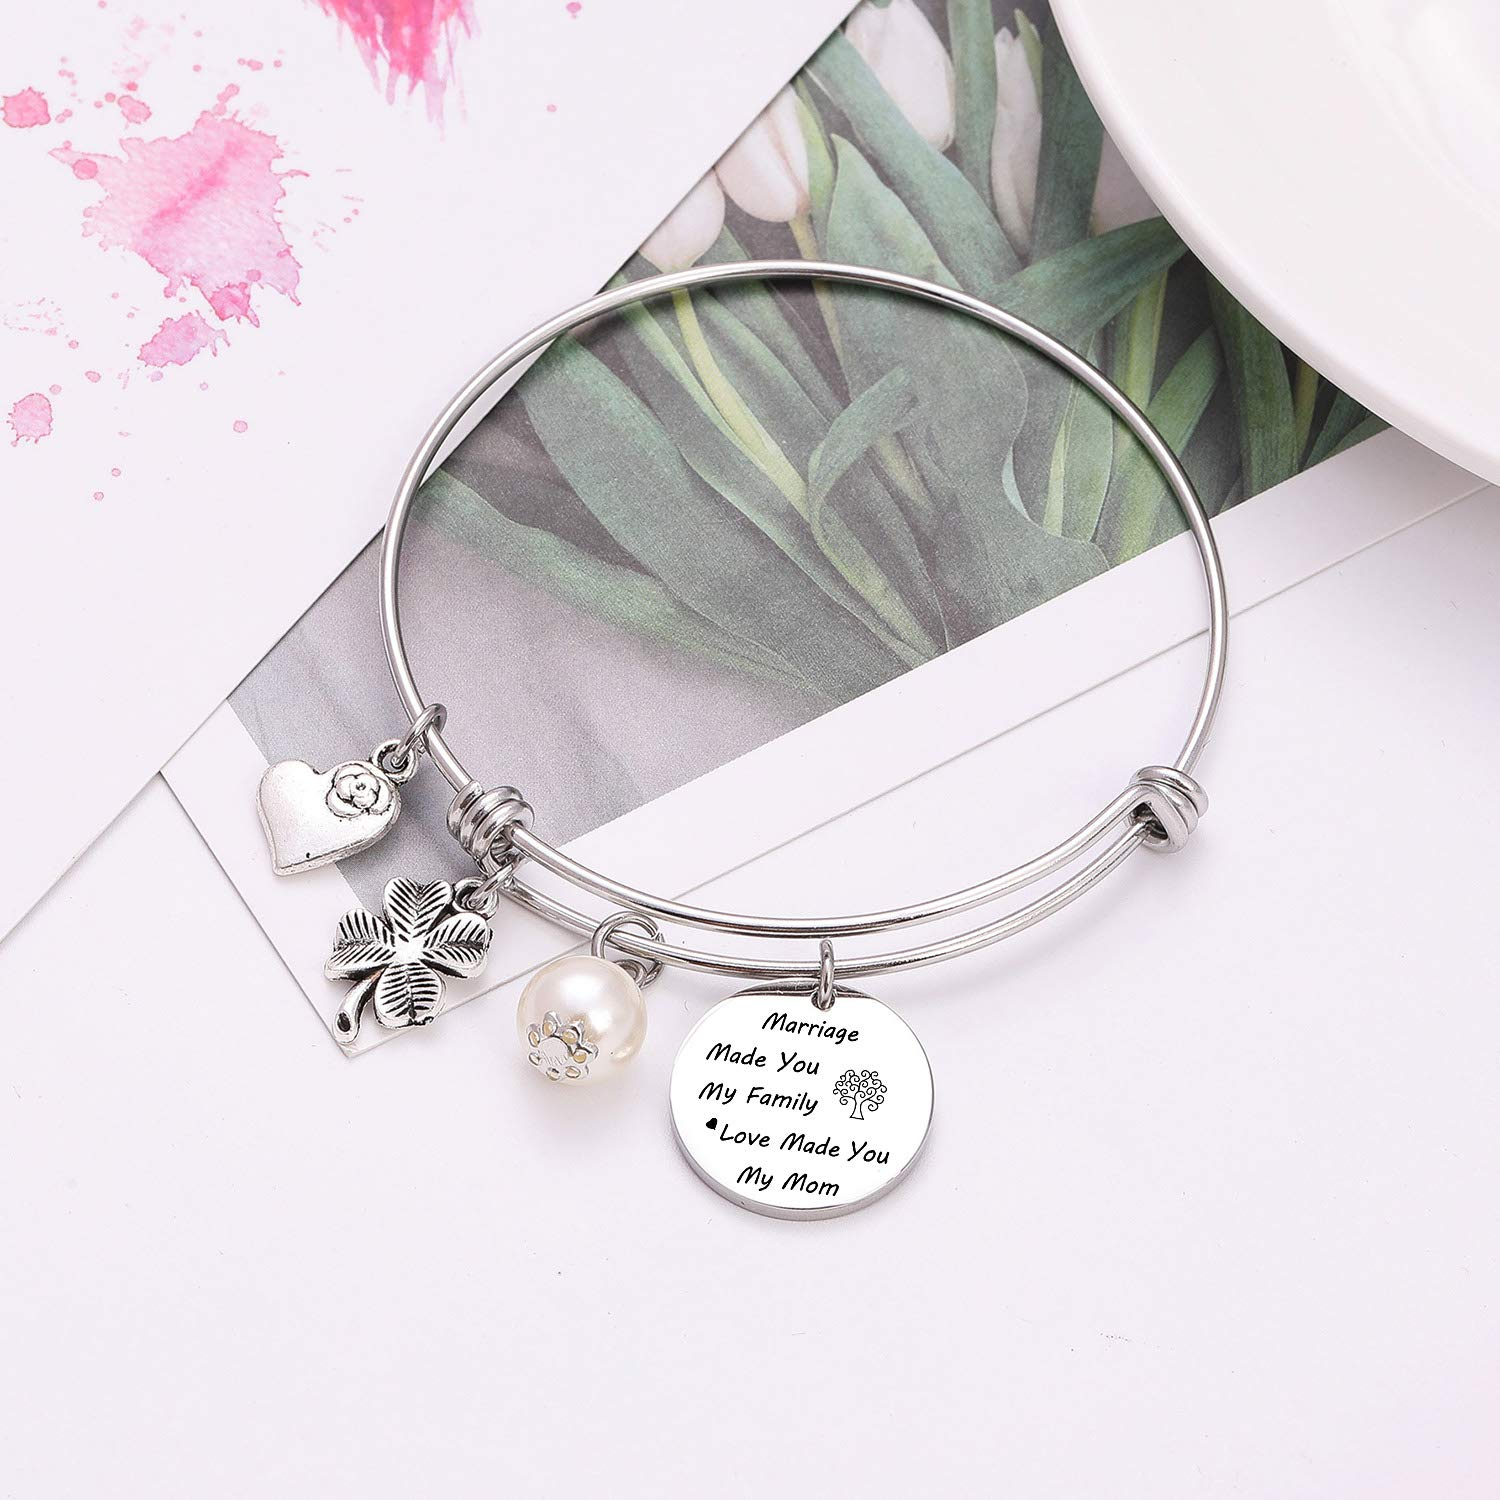 TzrNhm Blossom Marriage Made You My Family Love Made You My Mom Bangle Necklace Keychain for Mother in Law,Stepmom